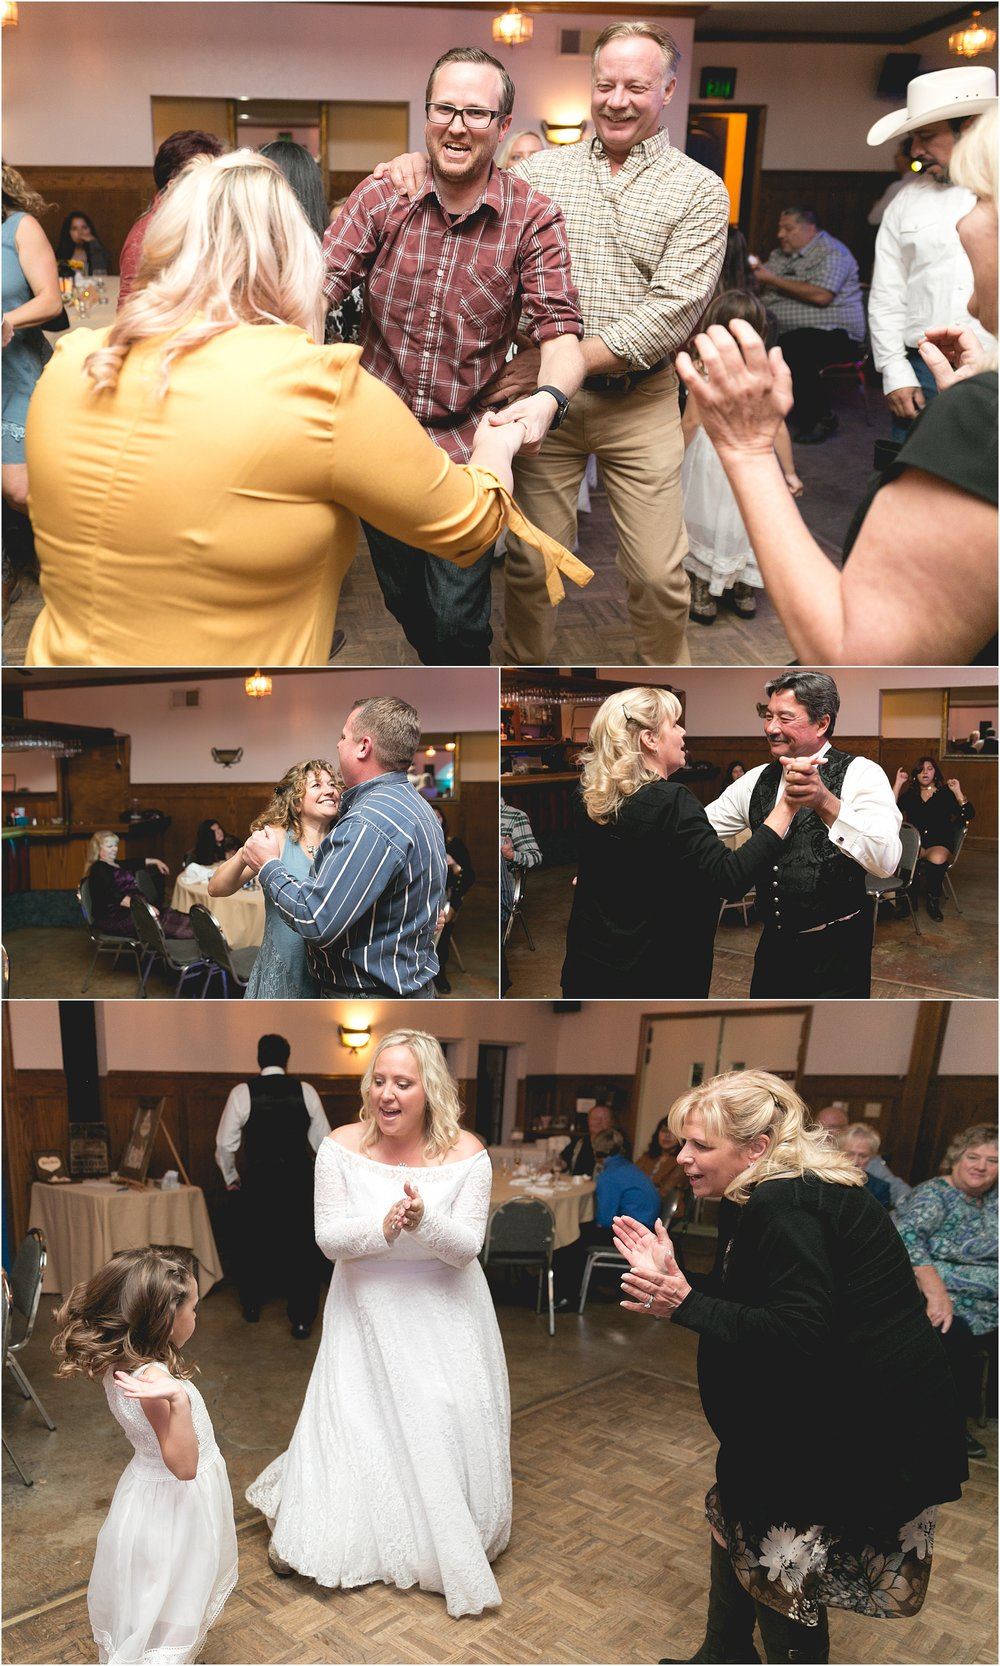 Manny and Michelle Wedding Stomps 27.jpg